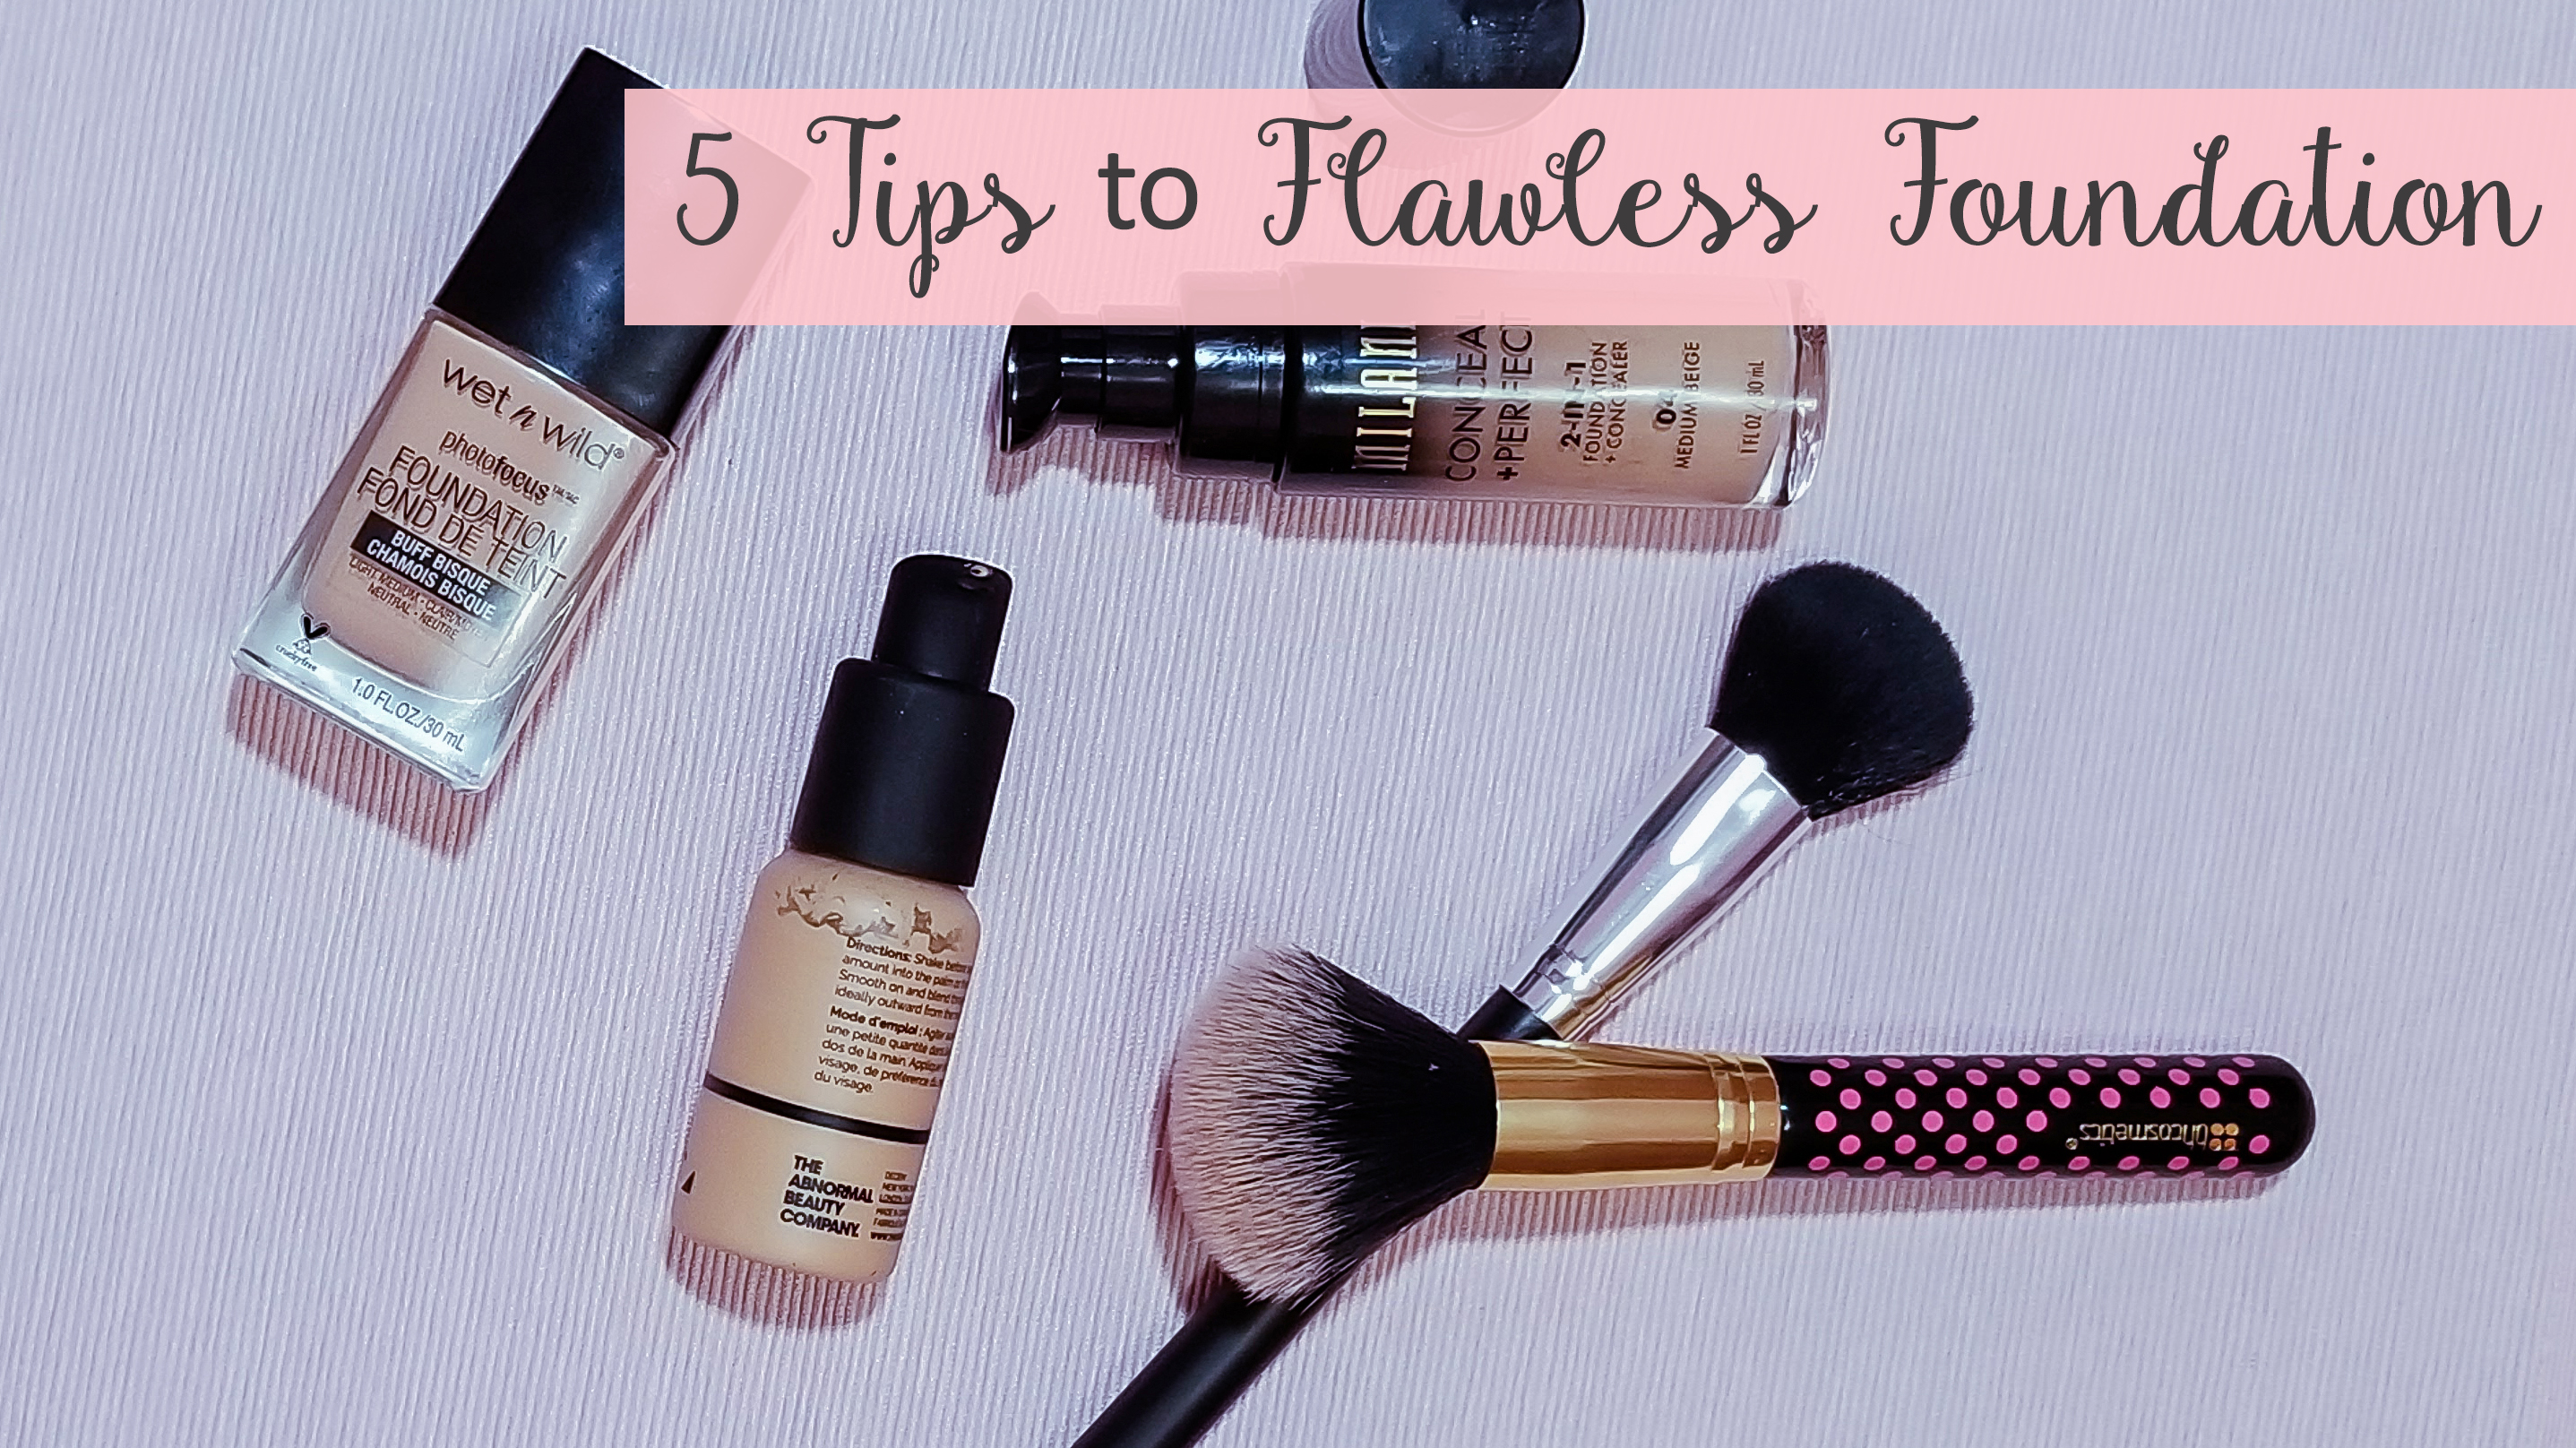 5 Tips to Make Foundation Look Flawless